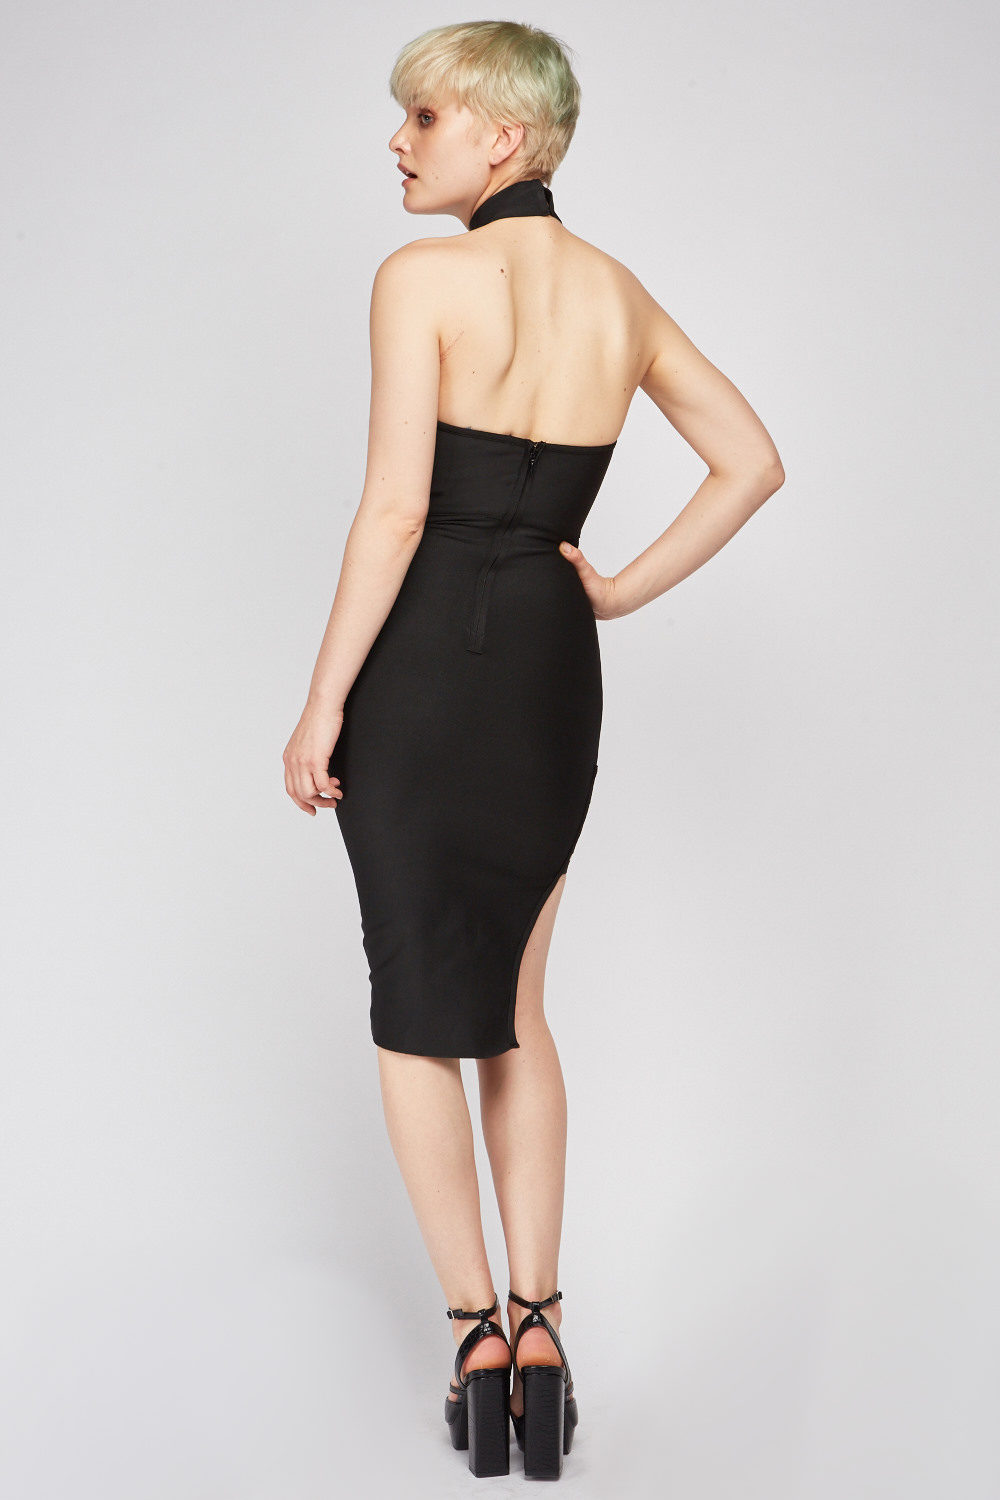 Cut Out Side Bodycon Dress Black Just 163 5